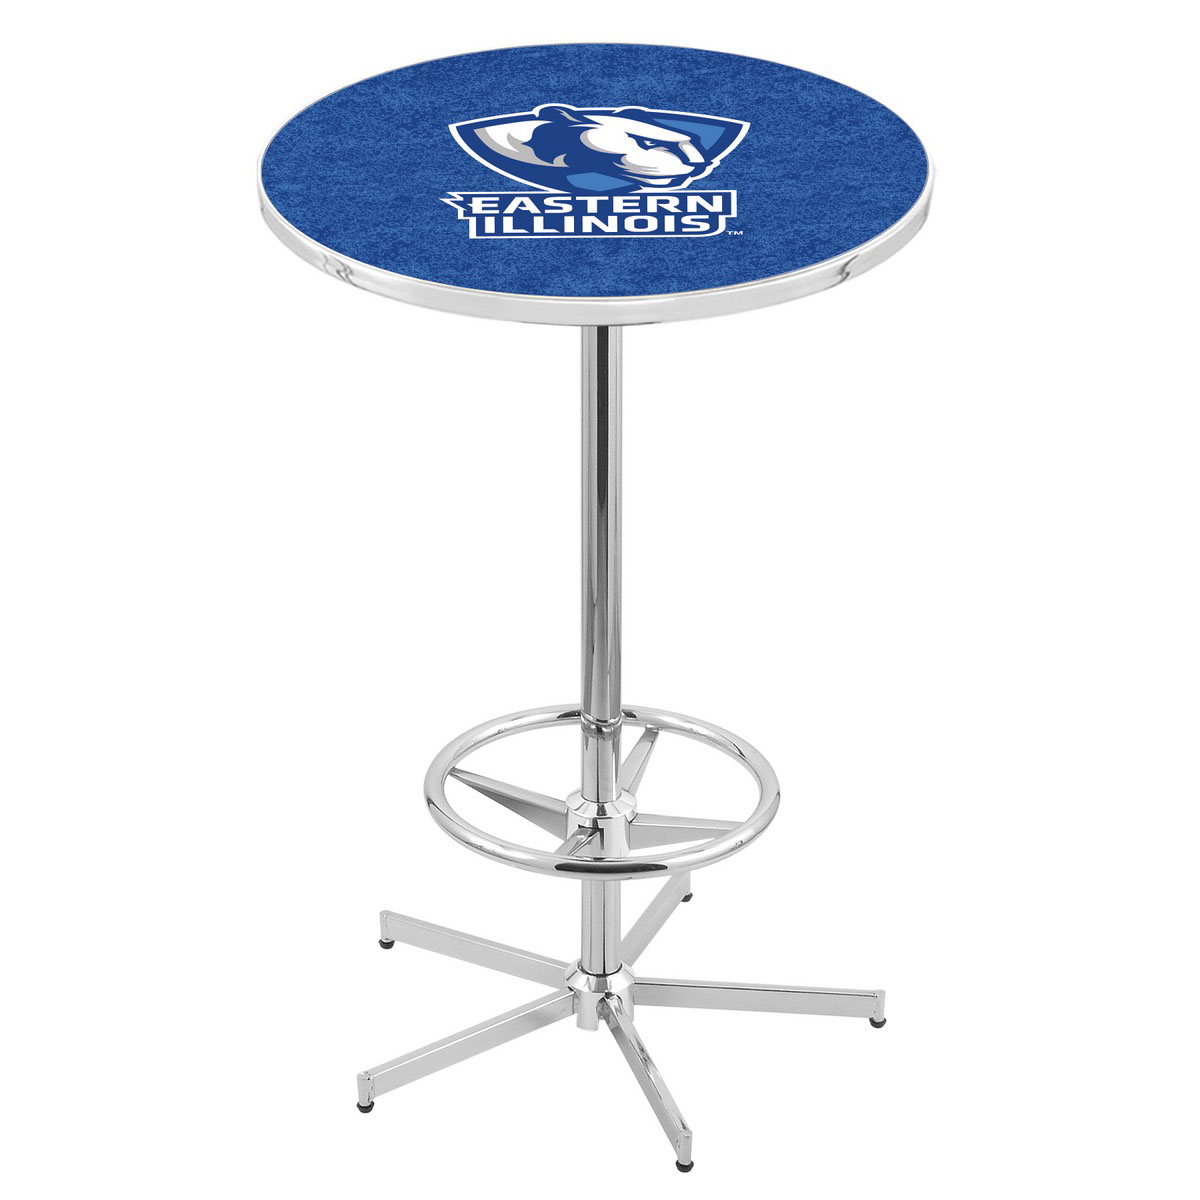 Trustworthy Chrome Eastern Illinois Pub Table Product Photo